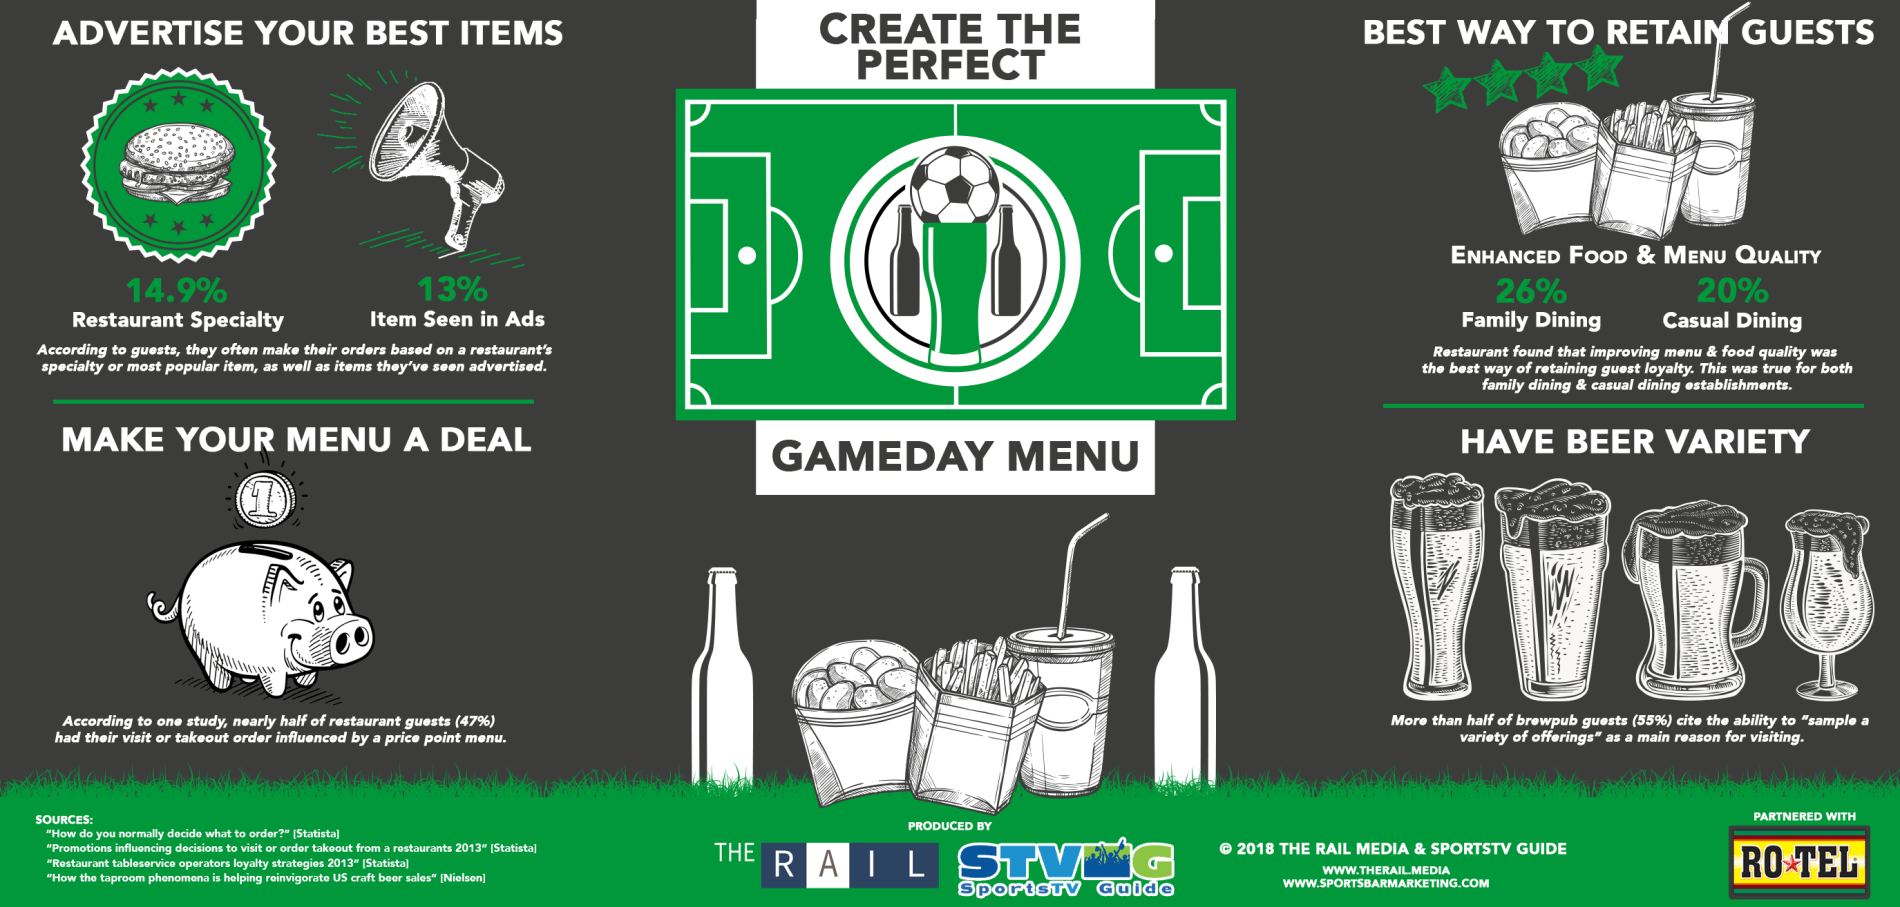 4 Stats for Creating a Gameday Menu